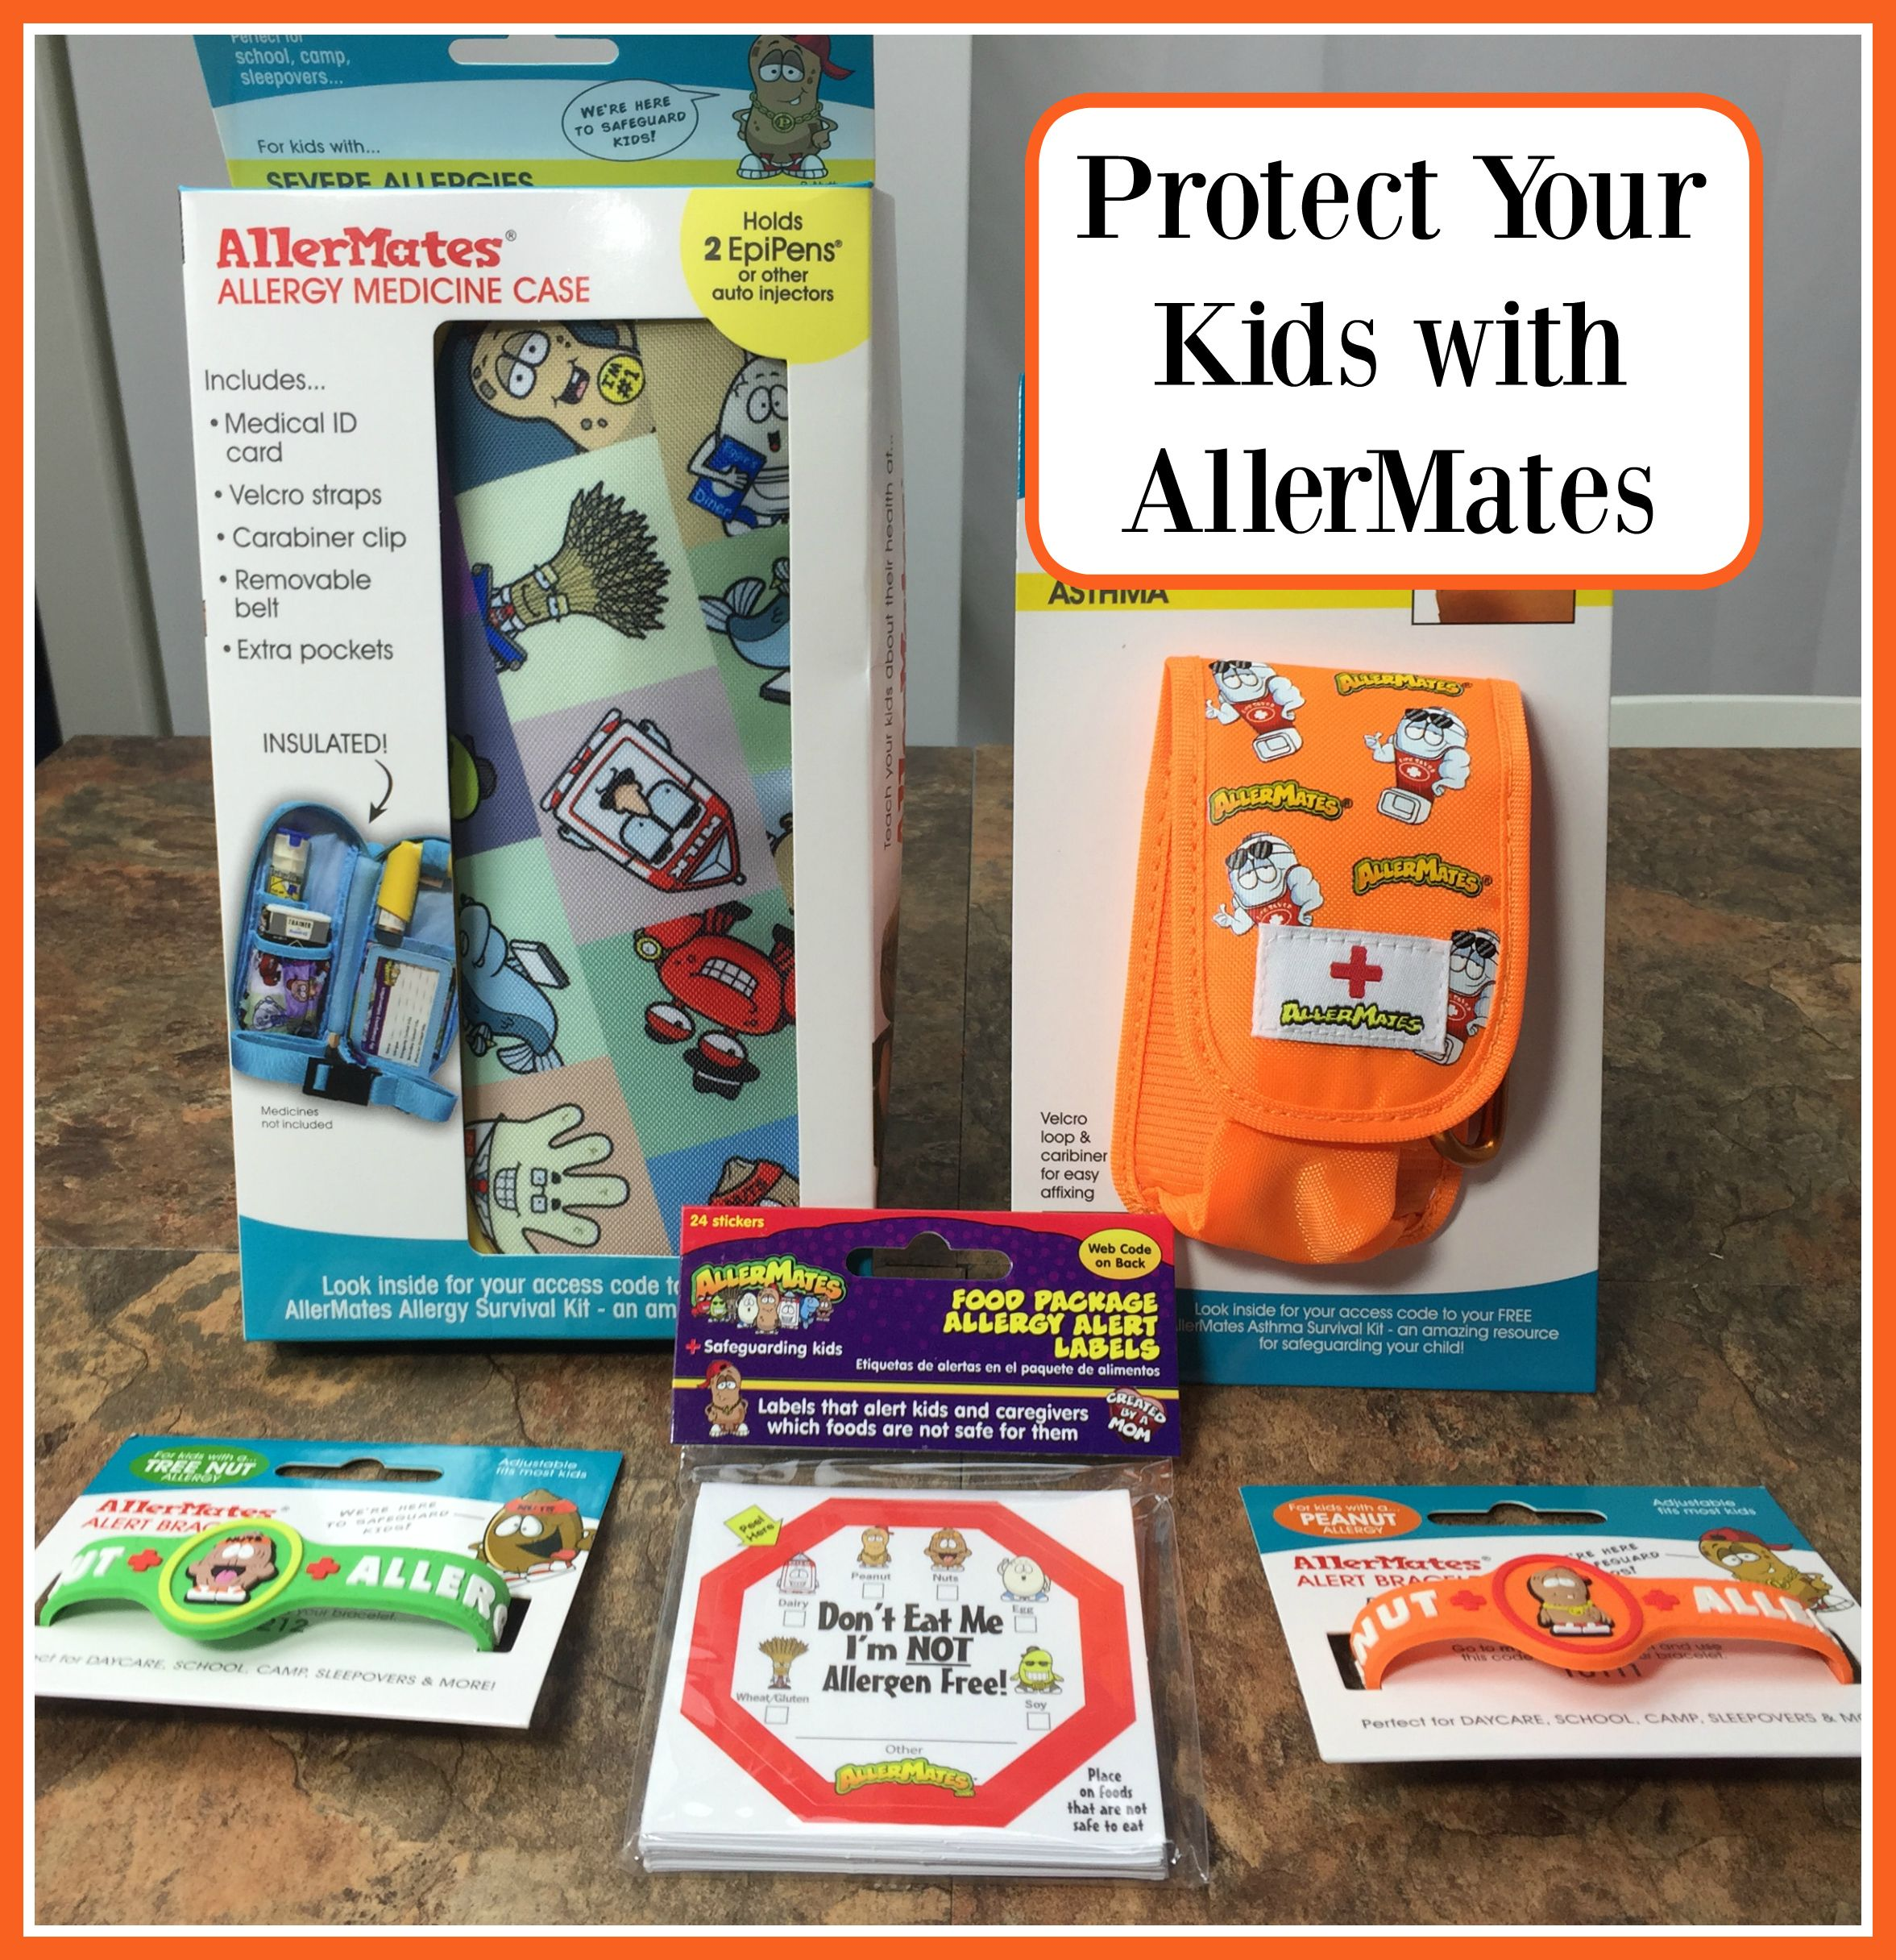 Protect Your Kids with AllerMates #AllerMates #KidsWithAllergies #ad